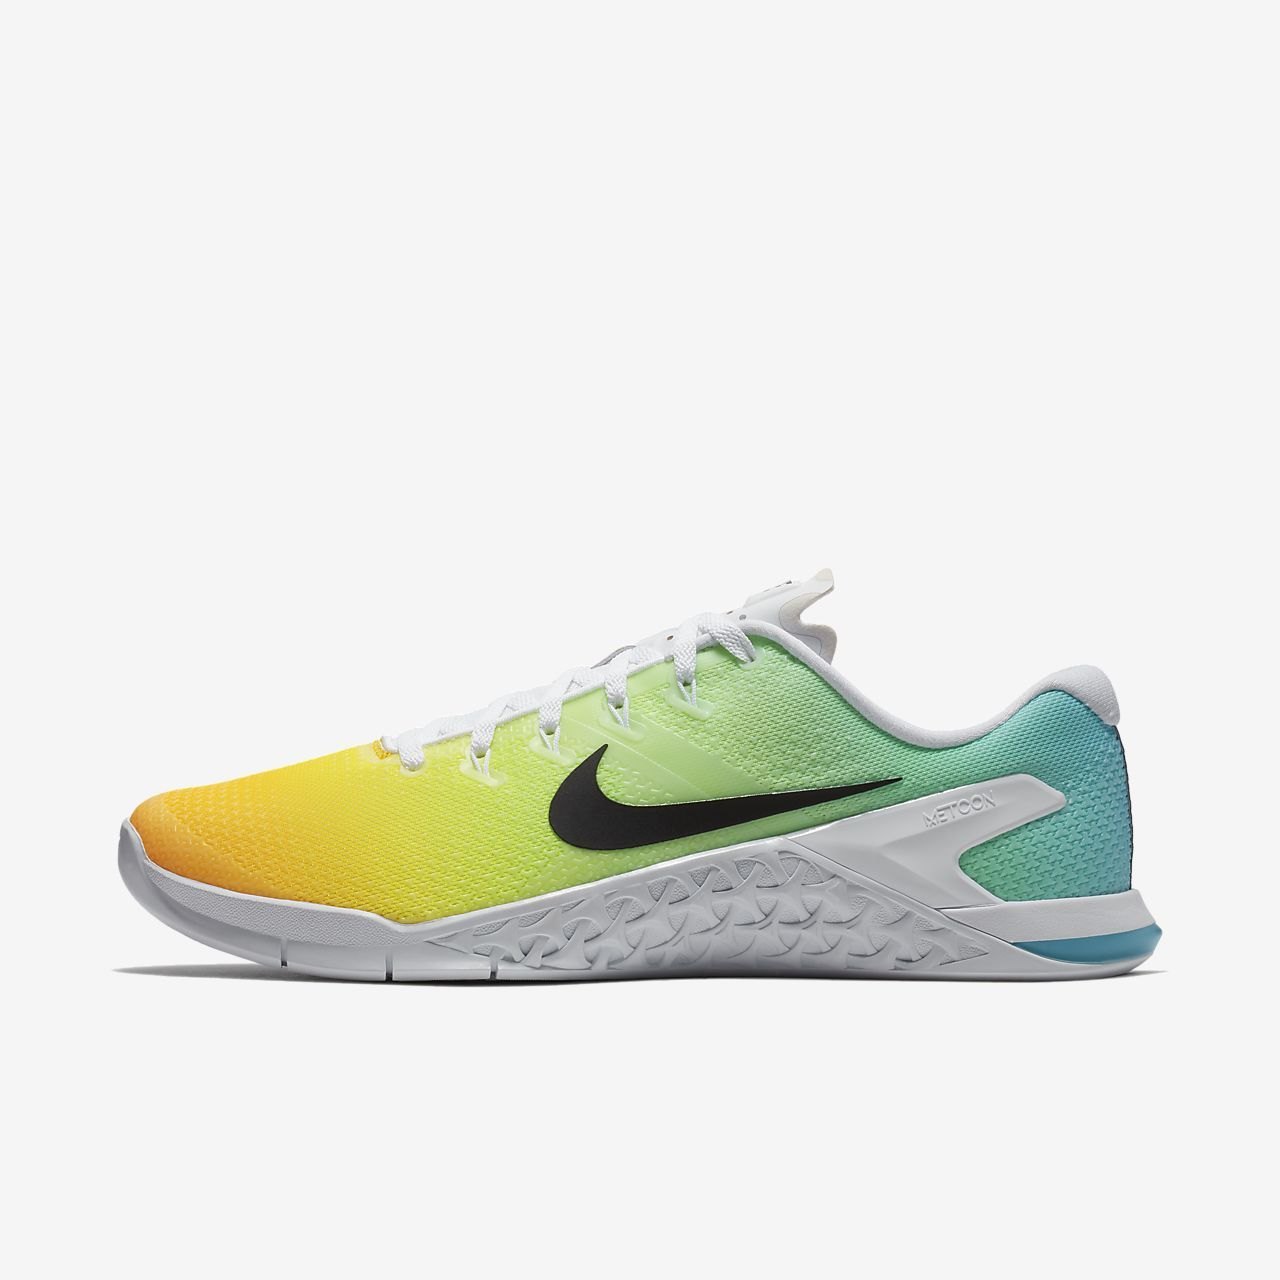 Nike Nike Nike Metcon 4 Uomo Cross Training, Weightlifting scarpe   Nike   8ec70a